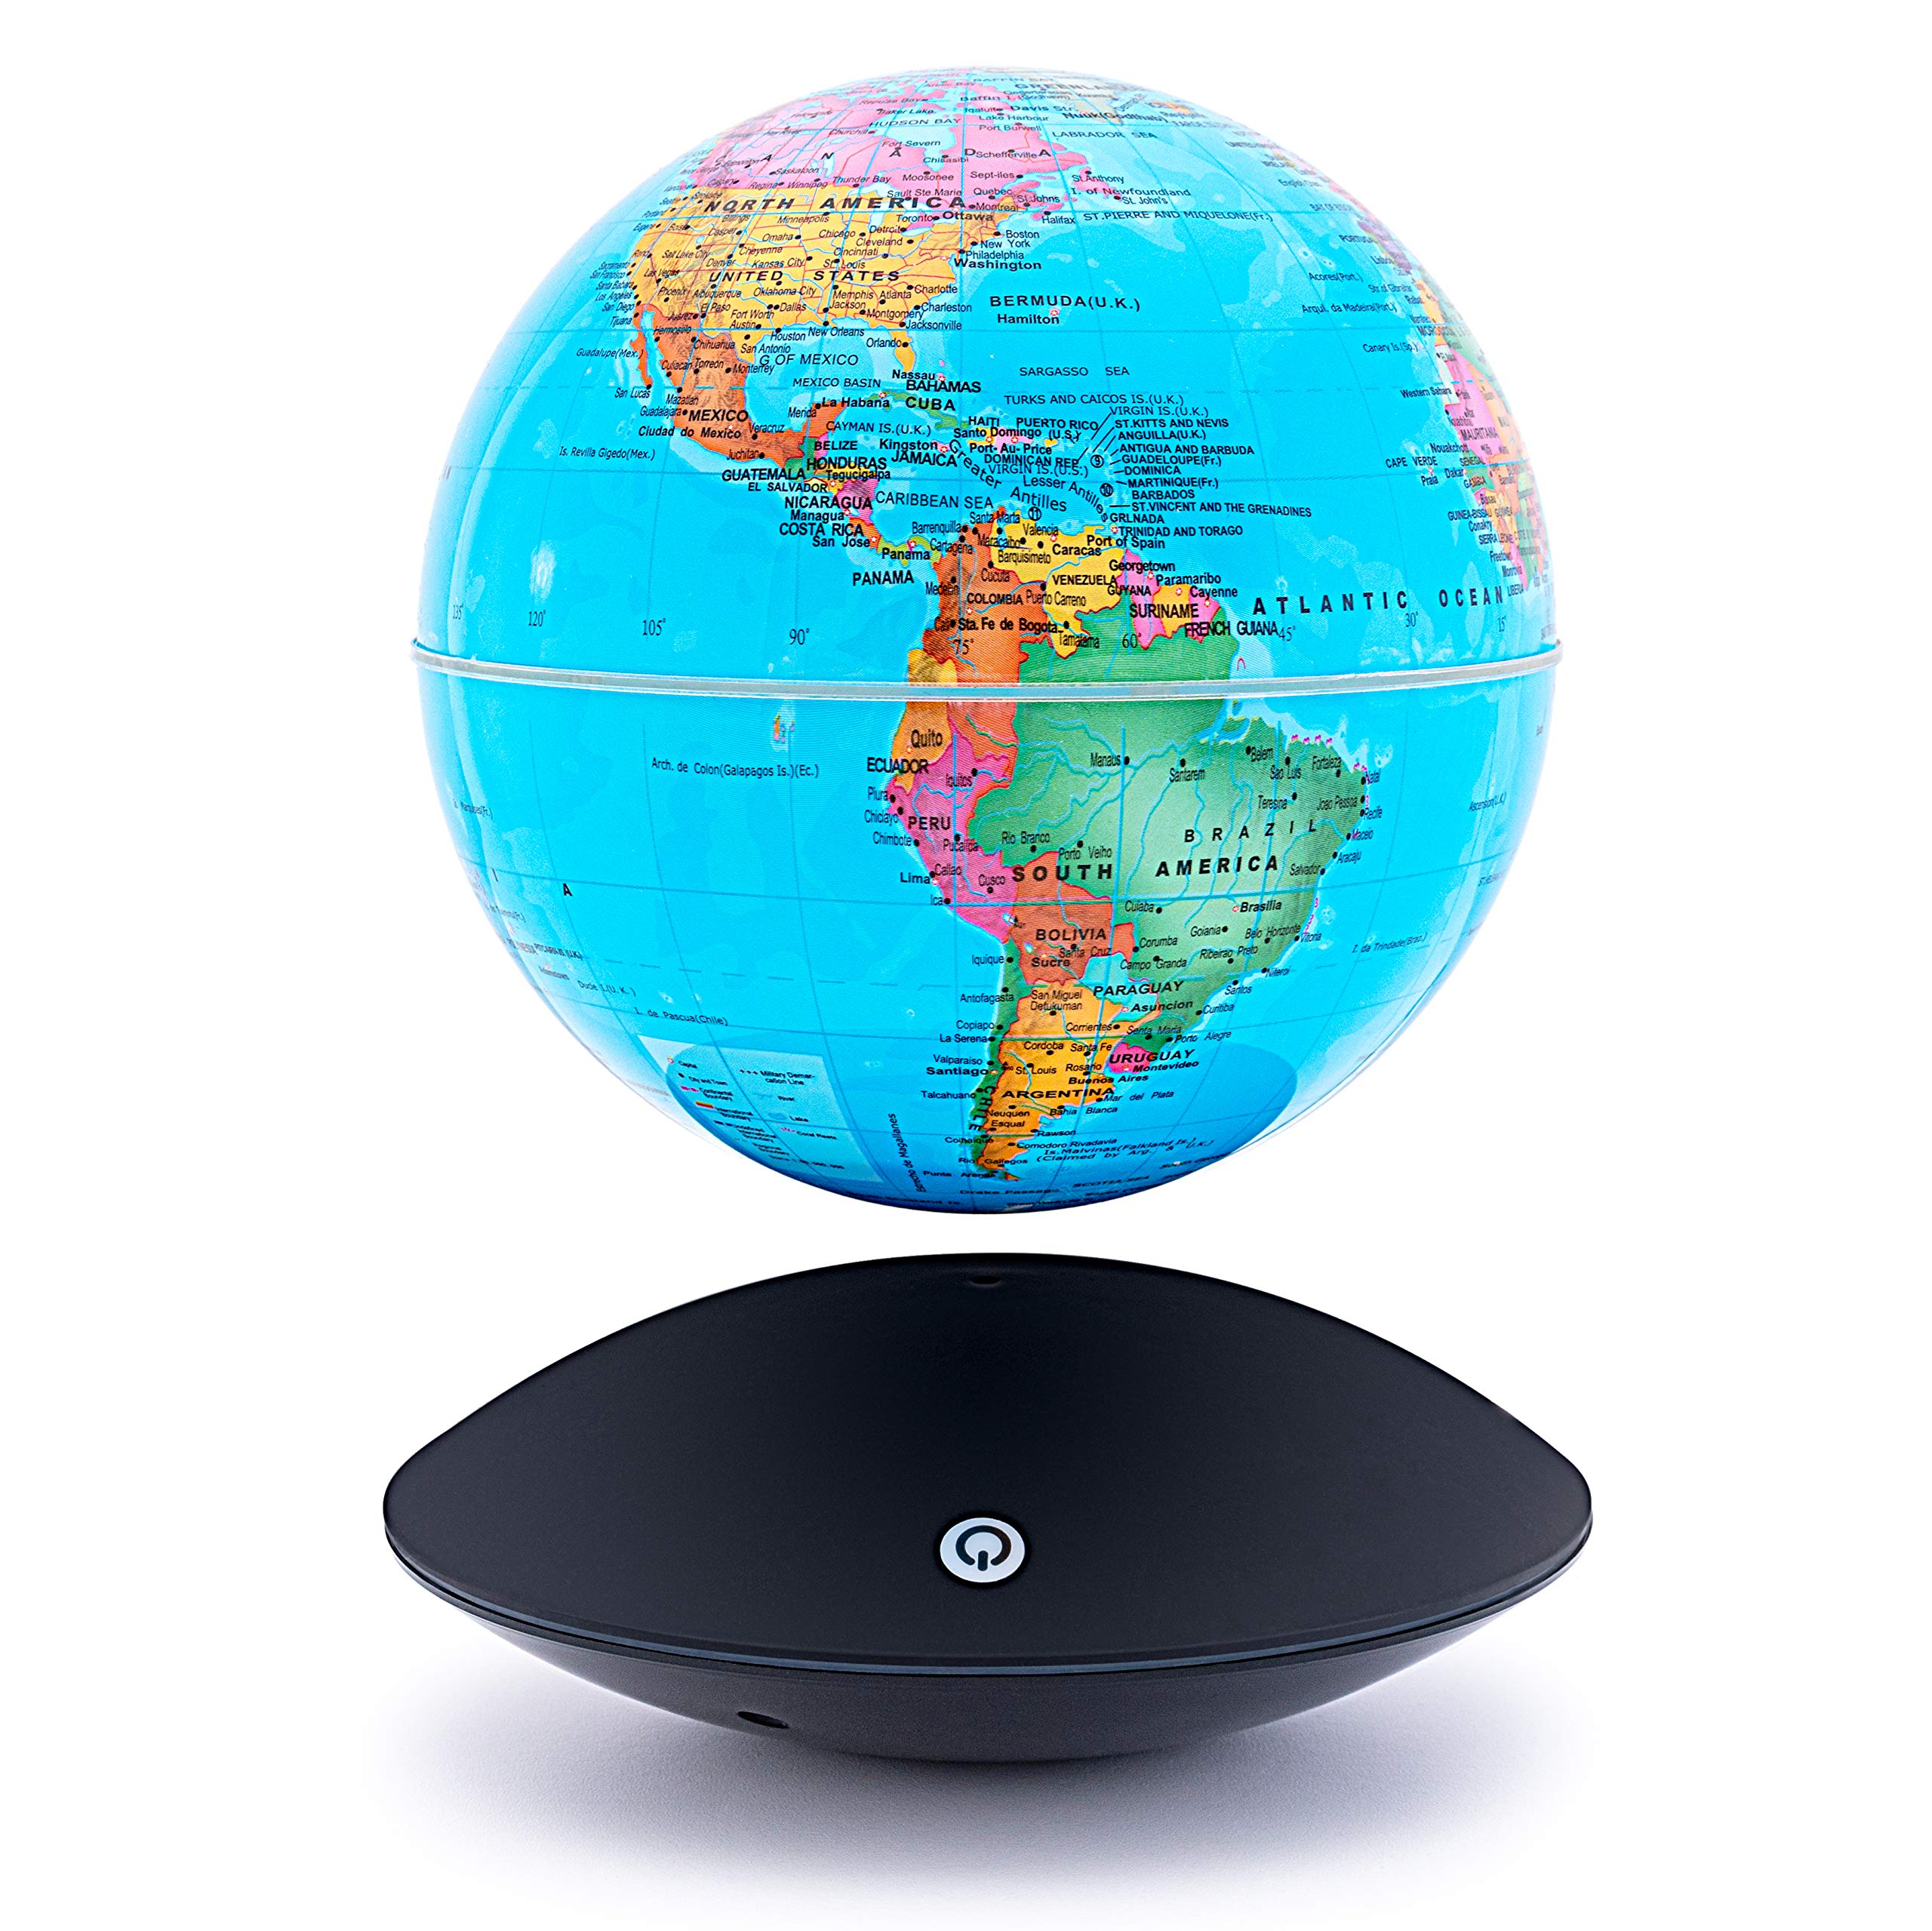 6 inch Magnetic Floating Levitation World Map Globe Auto-Rotation Changing LED Induction Light in Globe for Children Educational Corporate Gift Home Office Desk Decoration Floating Globe by Aona